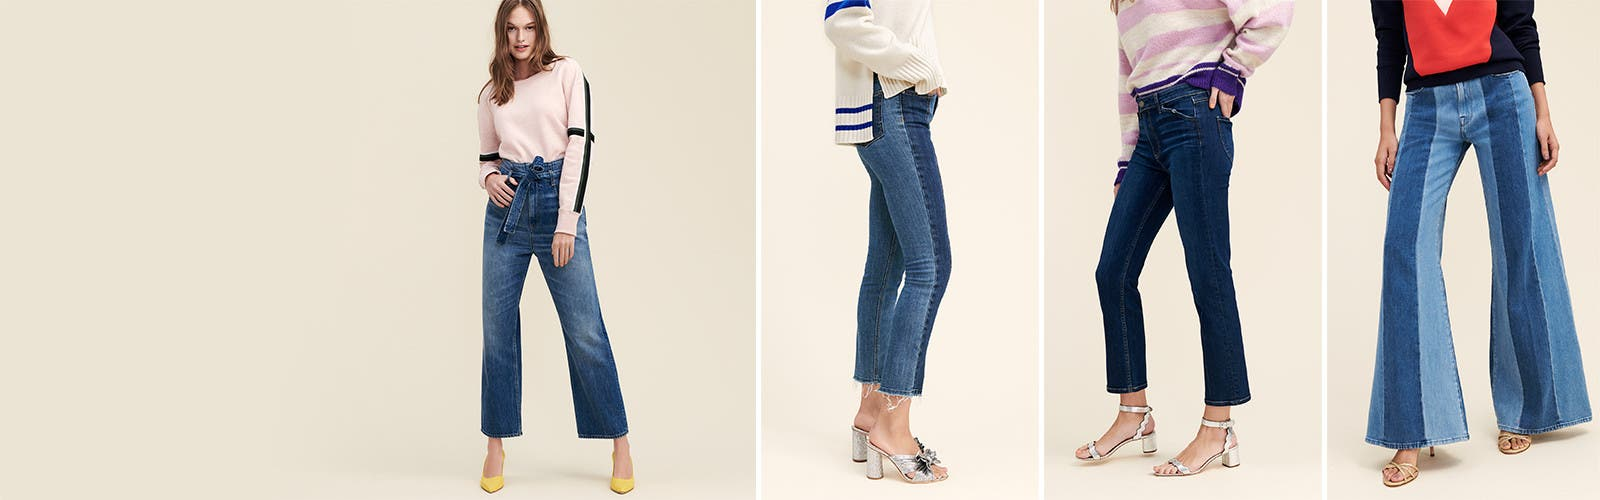 New year, new blues: women's jeans.